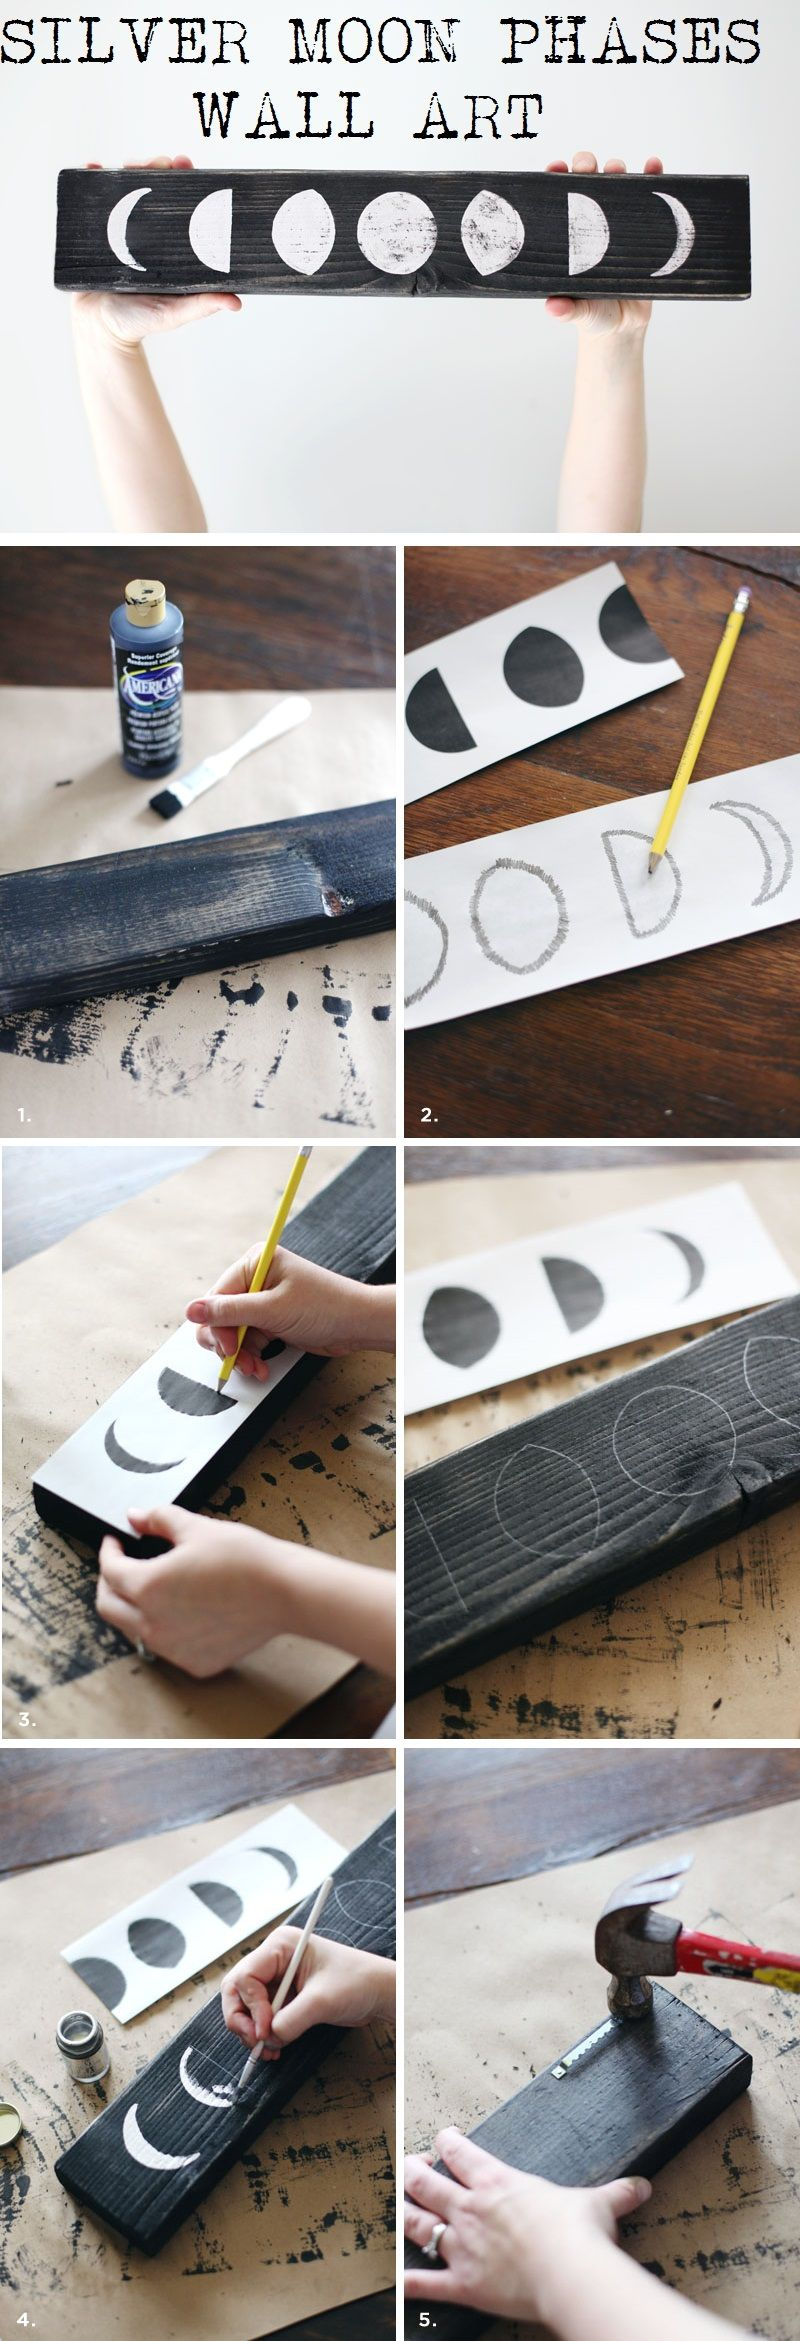 SILVER MOON PHASES WALL ART courtesy of A Beautiful Mess 1. Cover the board with black paint 2. Scribble on the back of the shapes 3. Trace the shapes with a pencil 4. Paint in the moon phases leaving some black showing 5. Attach wall hangings